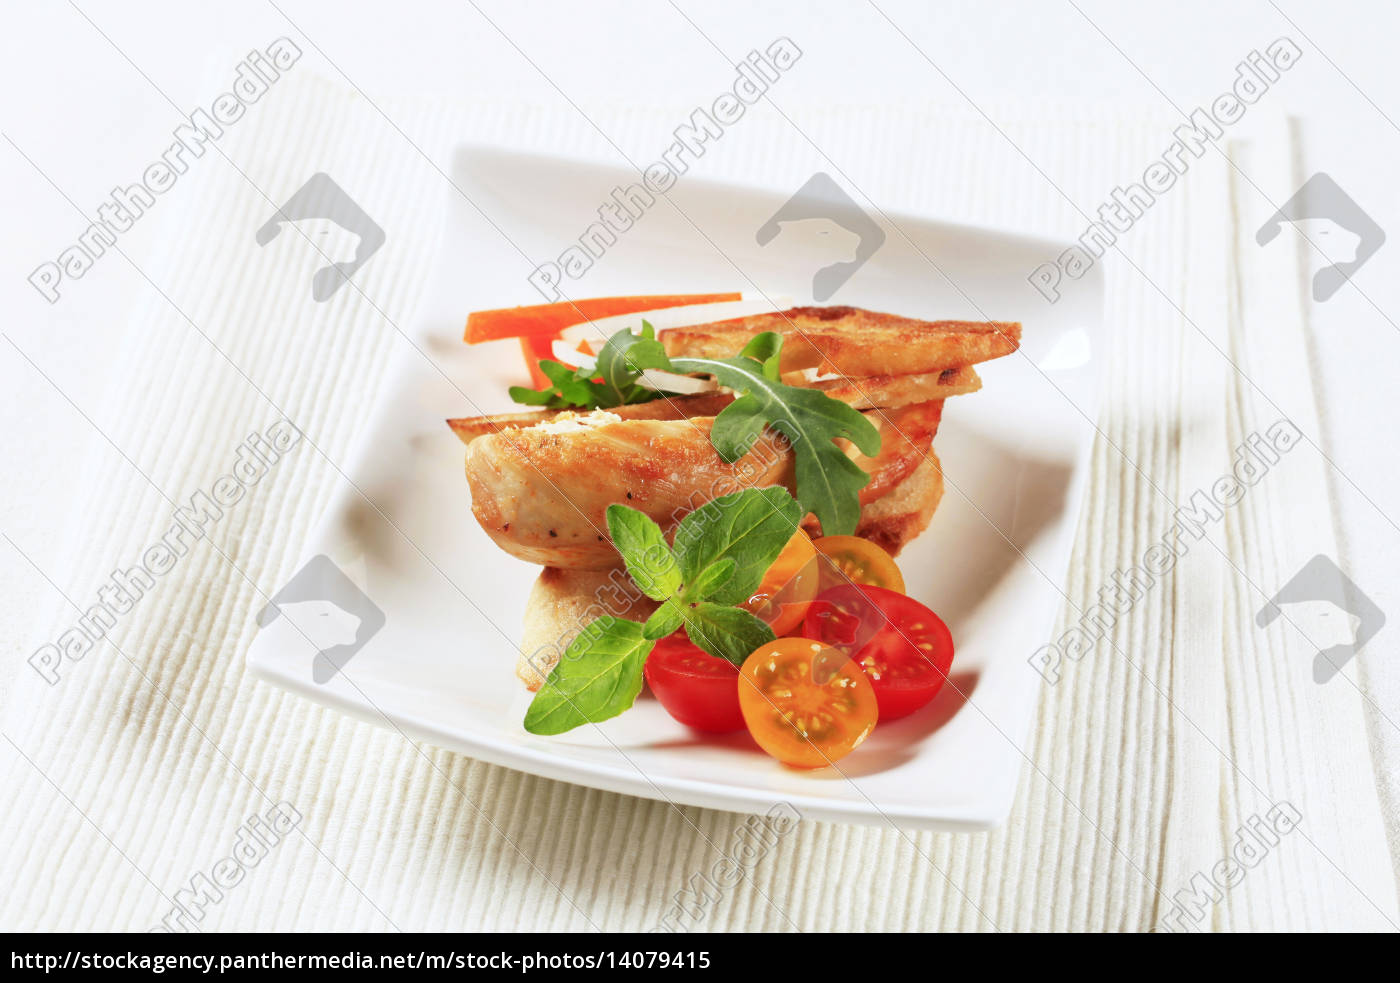 chicken, meat, and, crispy, bread - 14079415